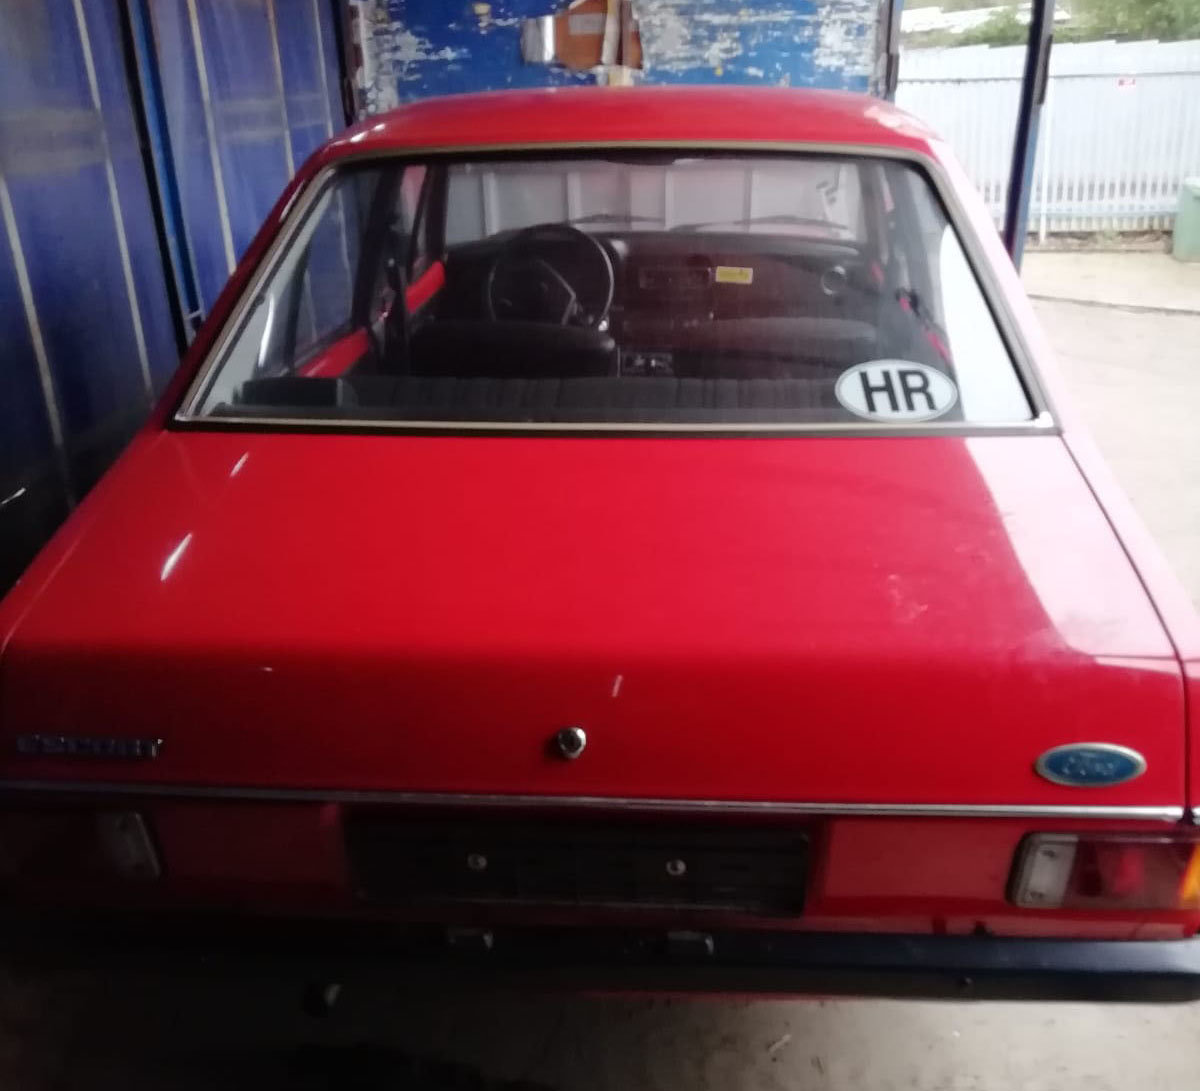 1978 Ford Escort Mark II 22 Feb 2020 For Sale by Auction (picture 4 of 4)